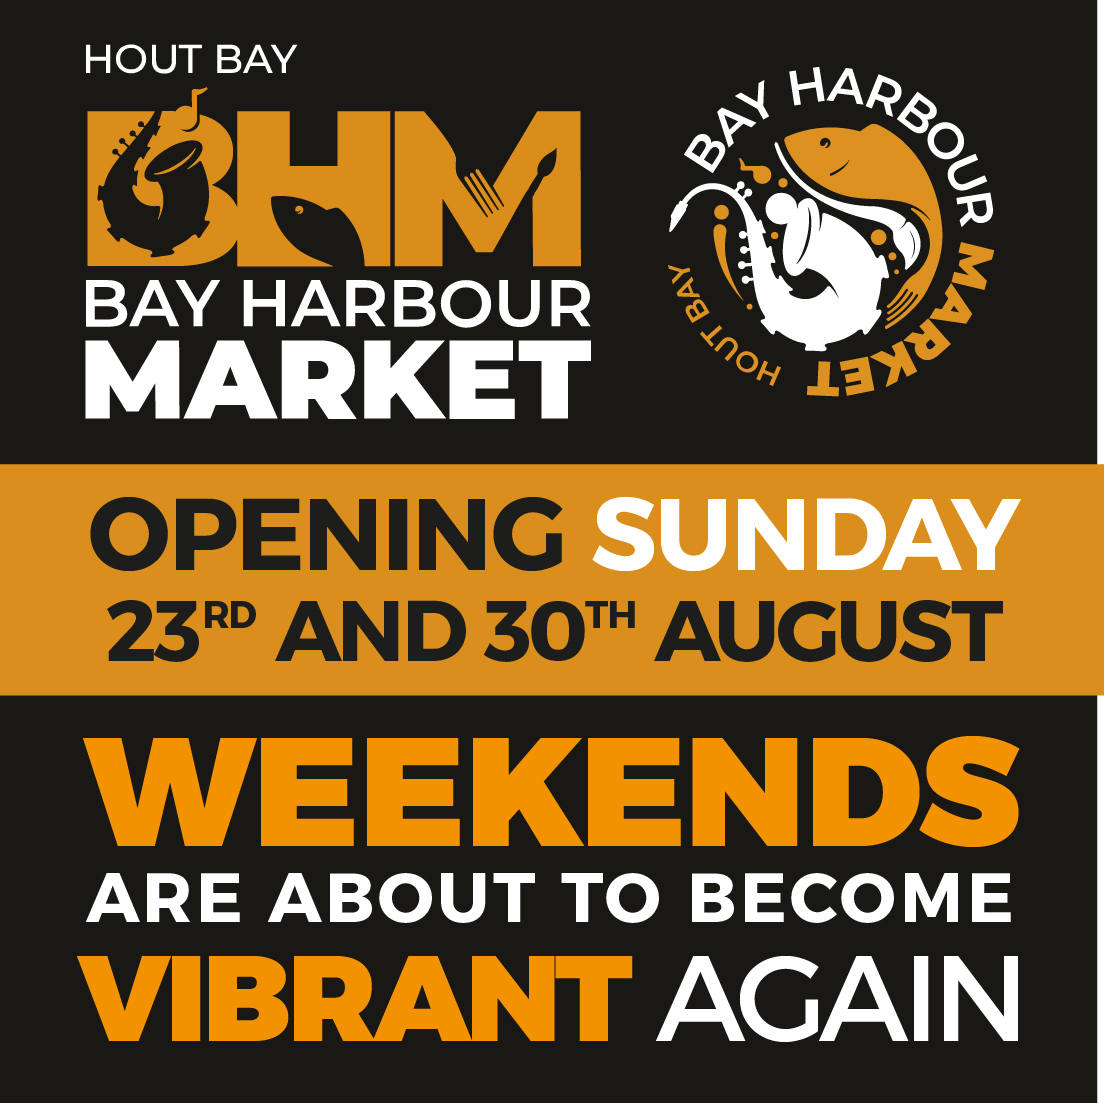 Bay Harbour Market Opening in August 2020